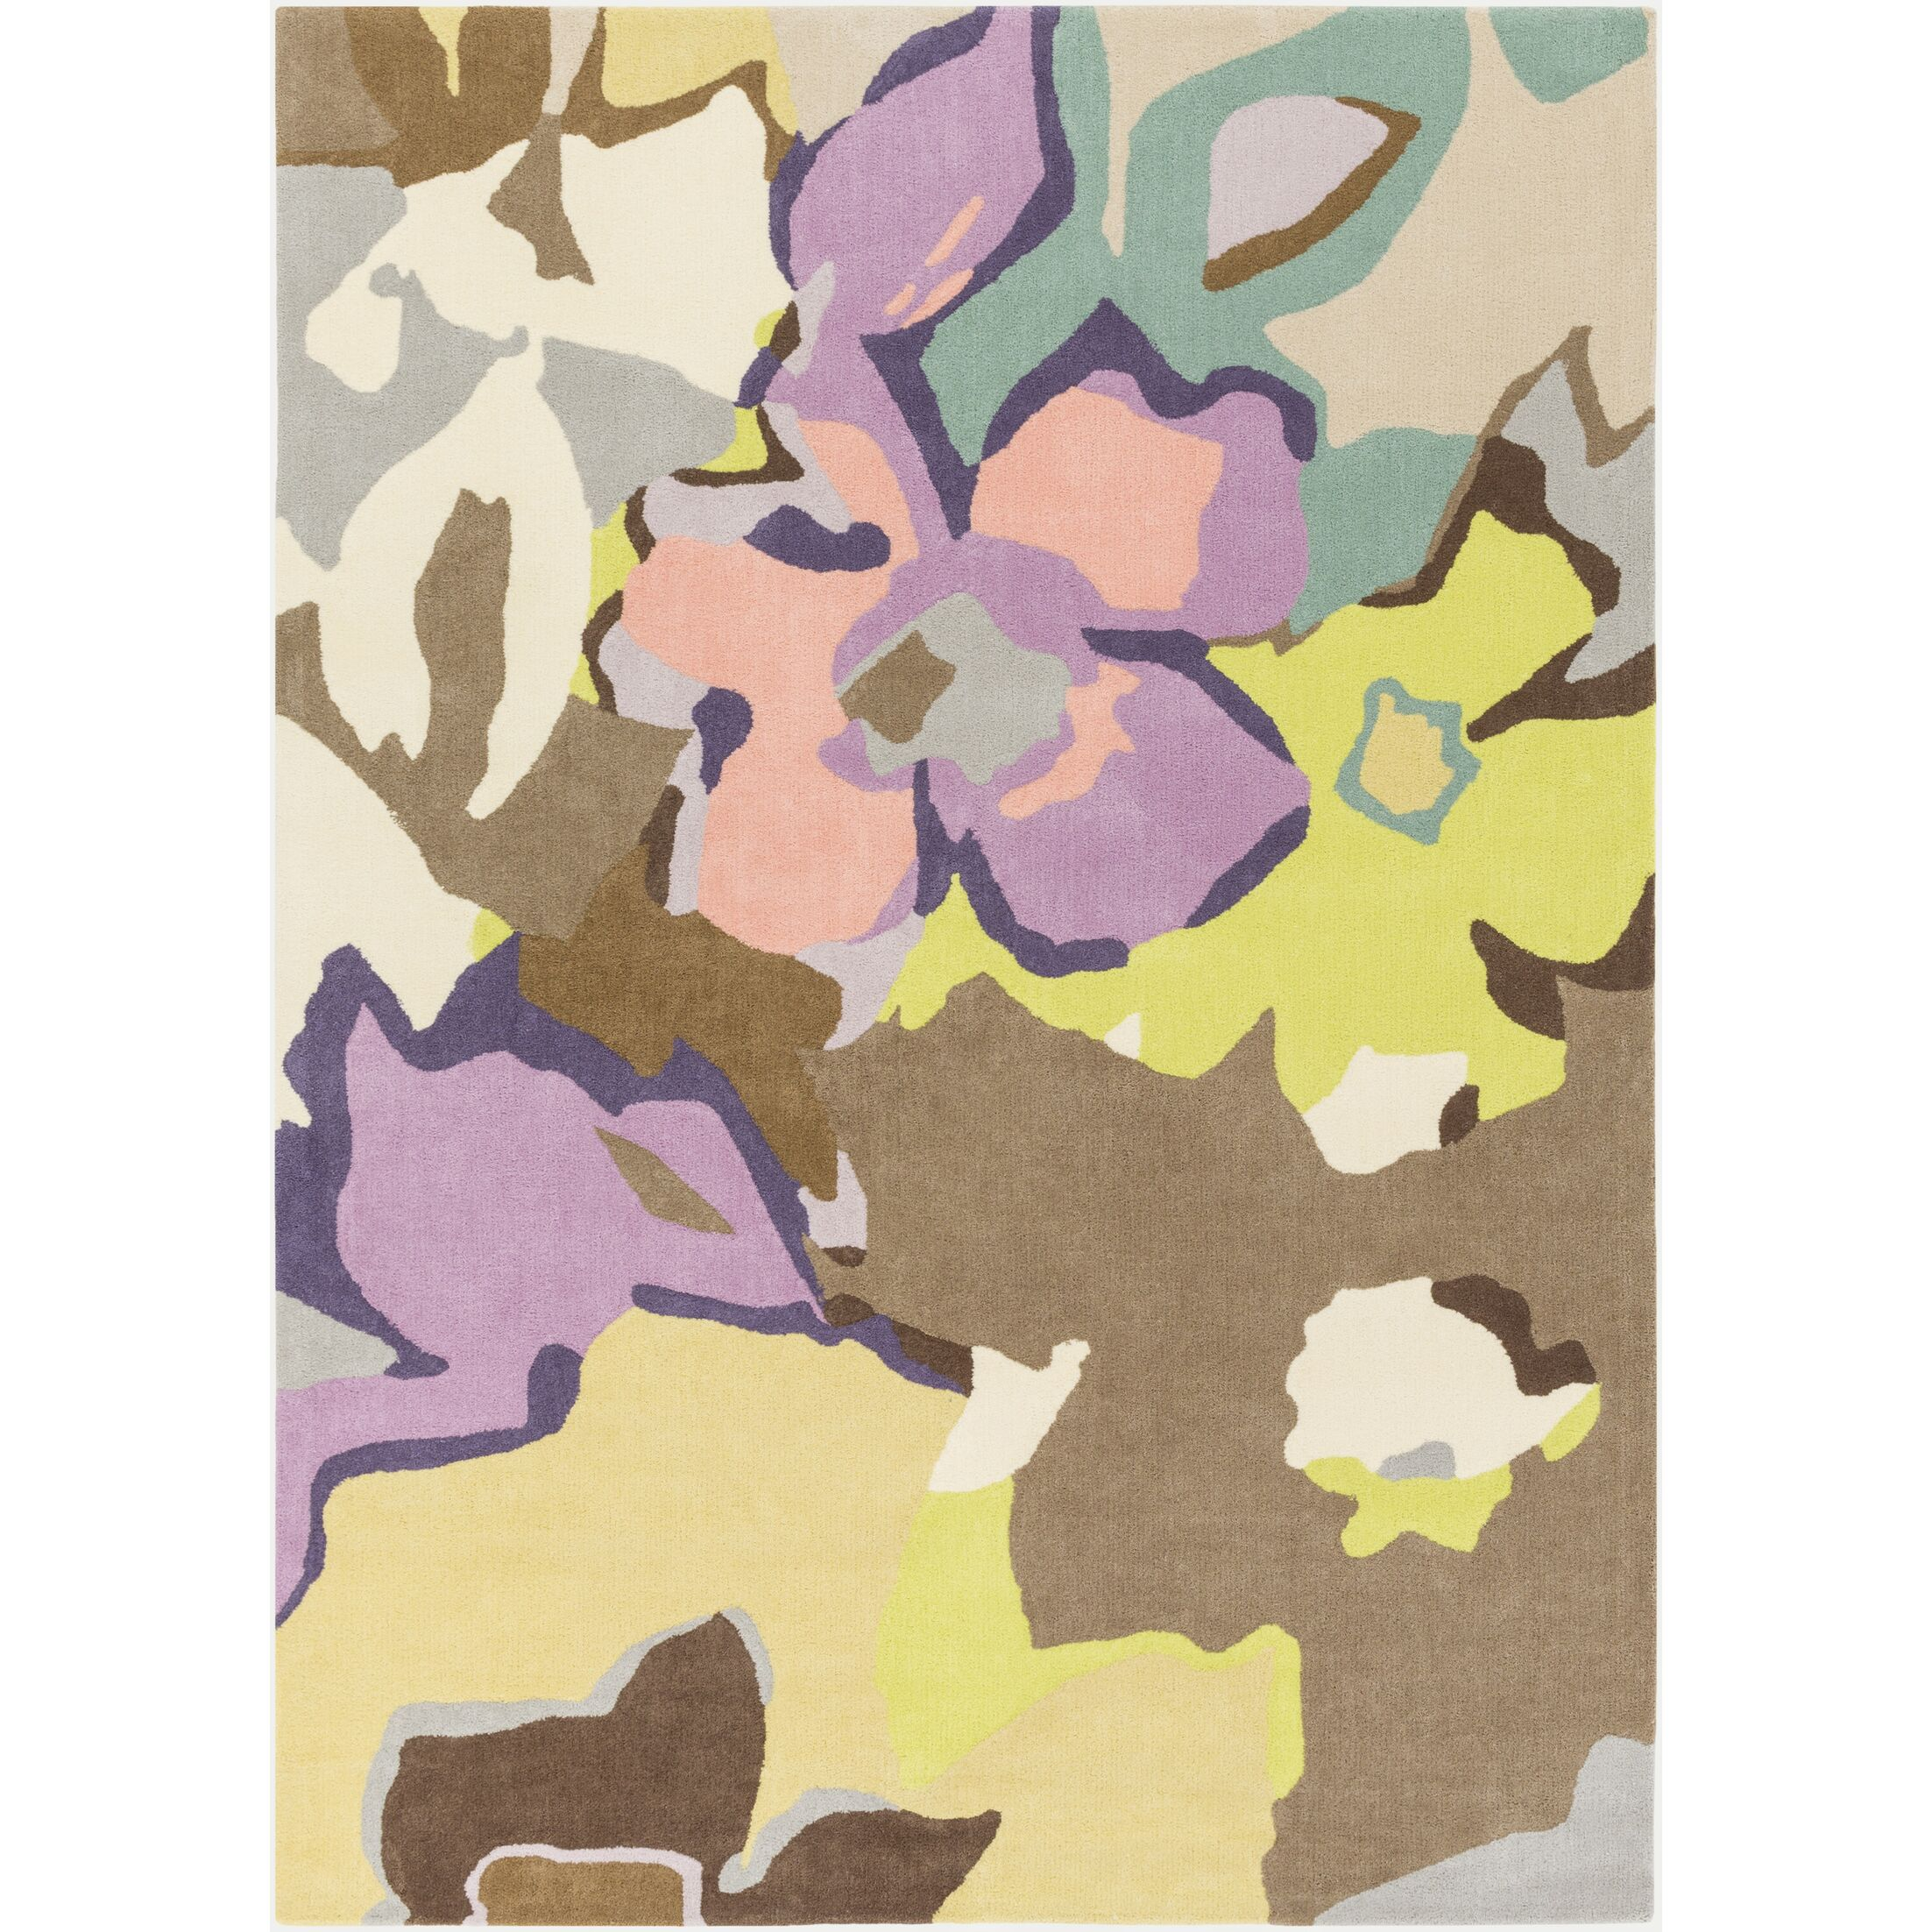 Aero Hand-Tufted Floral and paisley Wool Area Rug Rug Size: Rectangle 2' x 3'